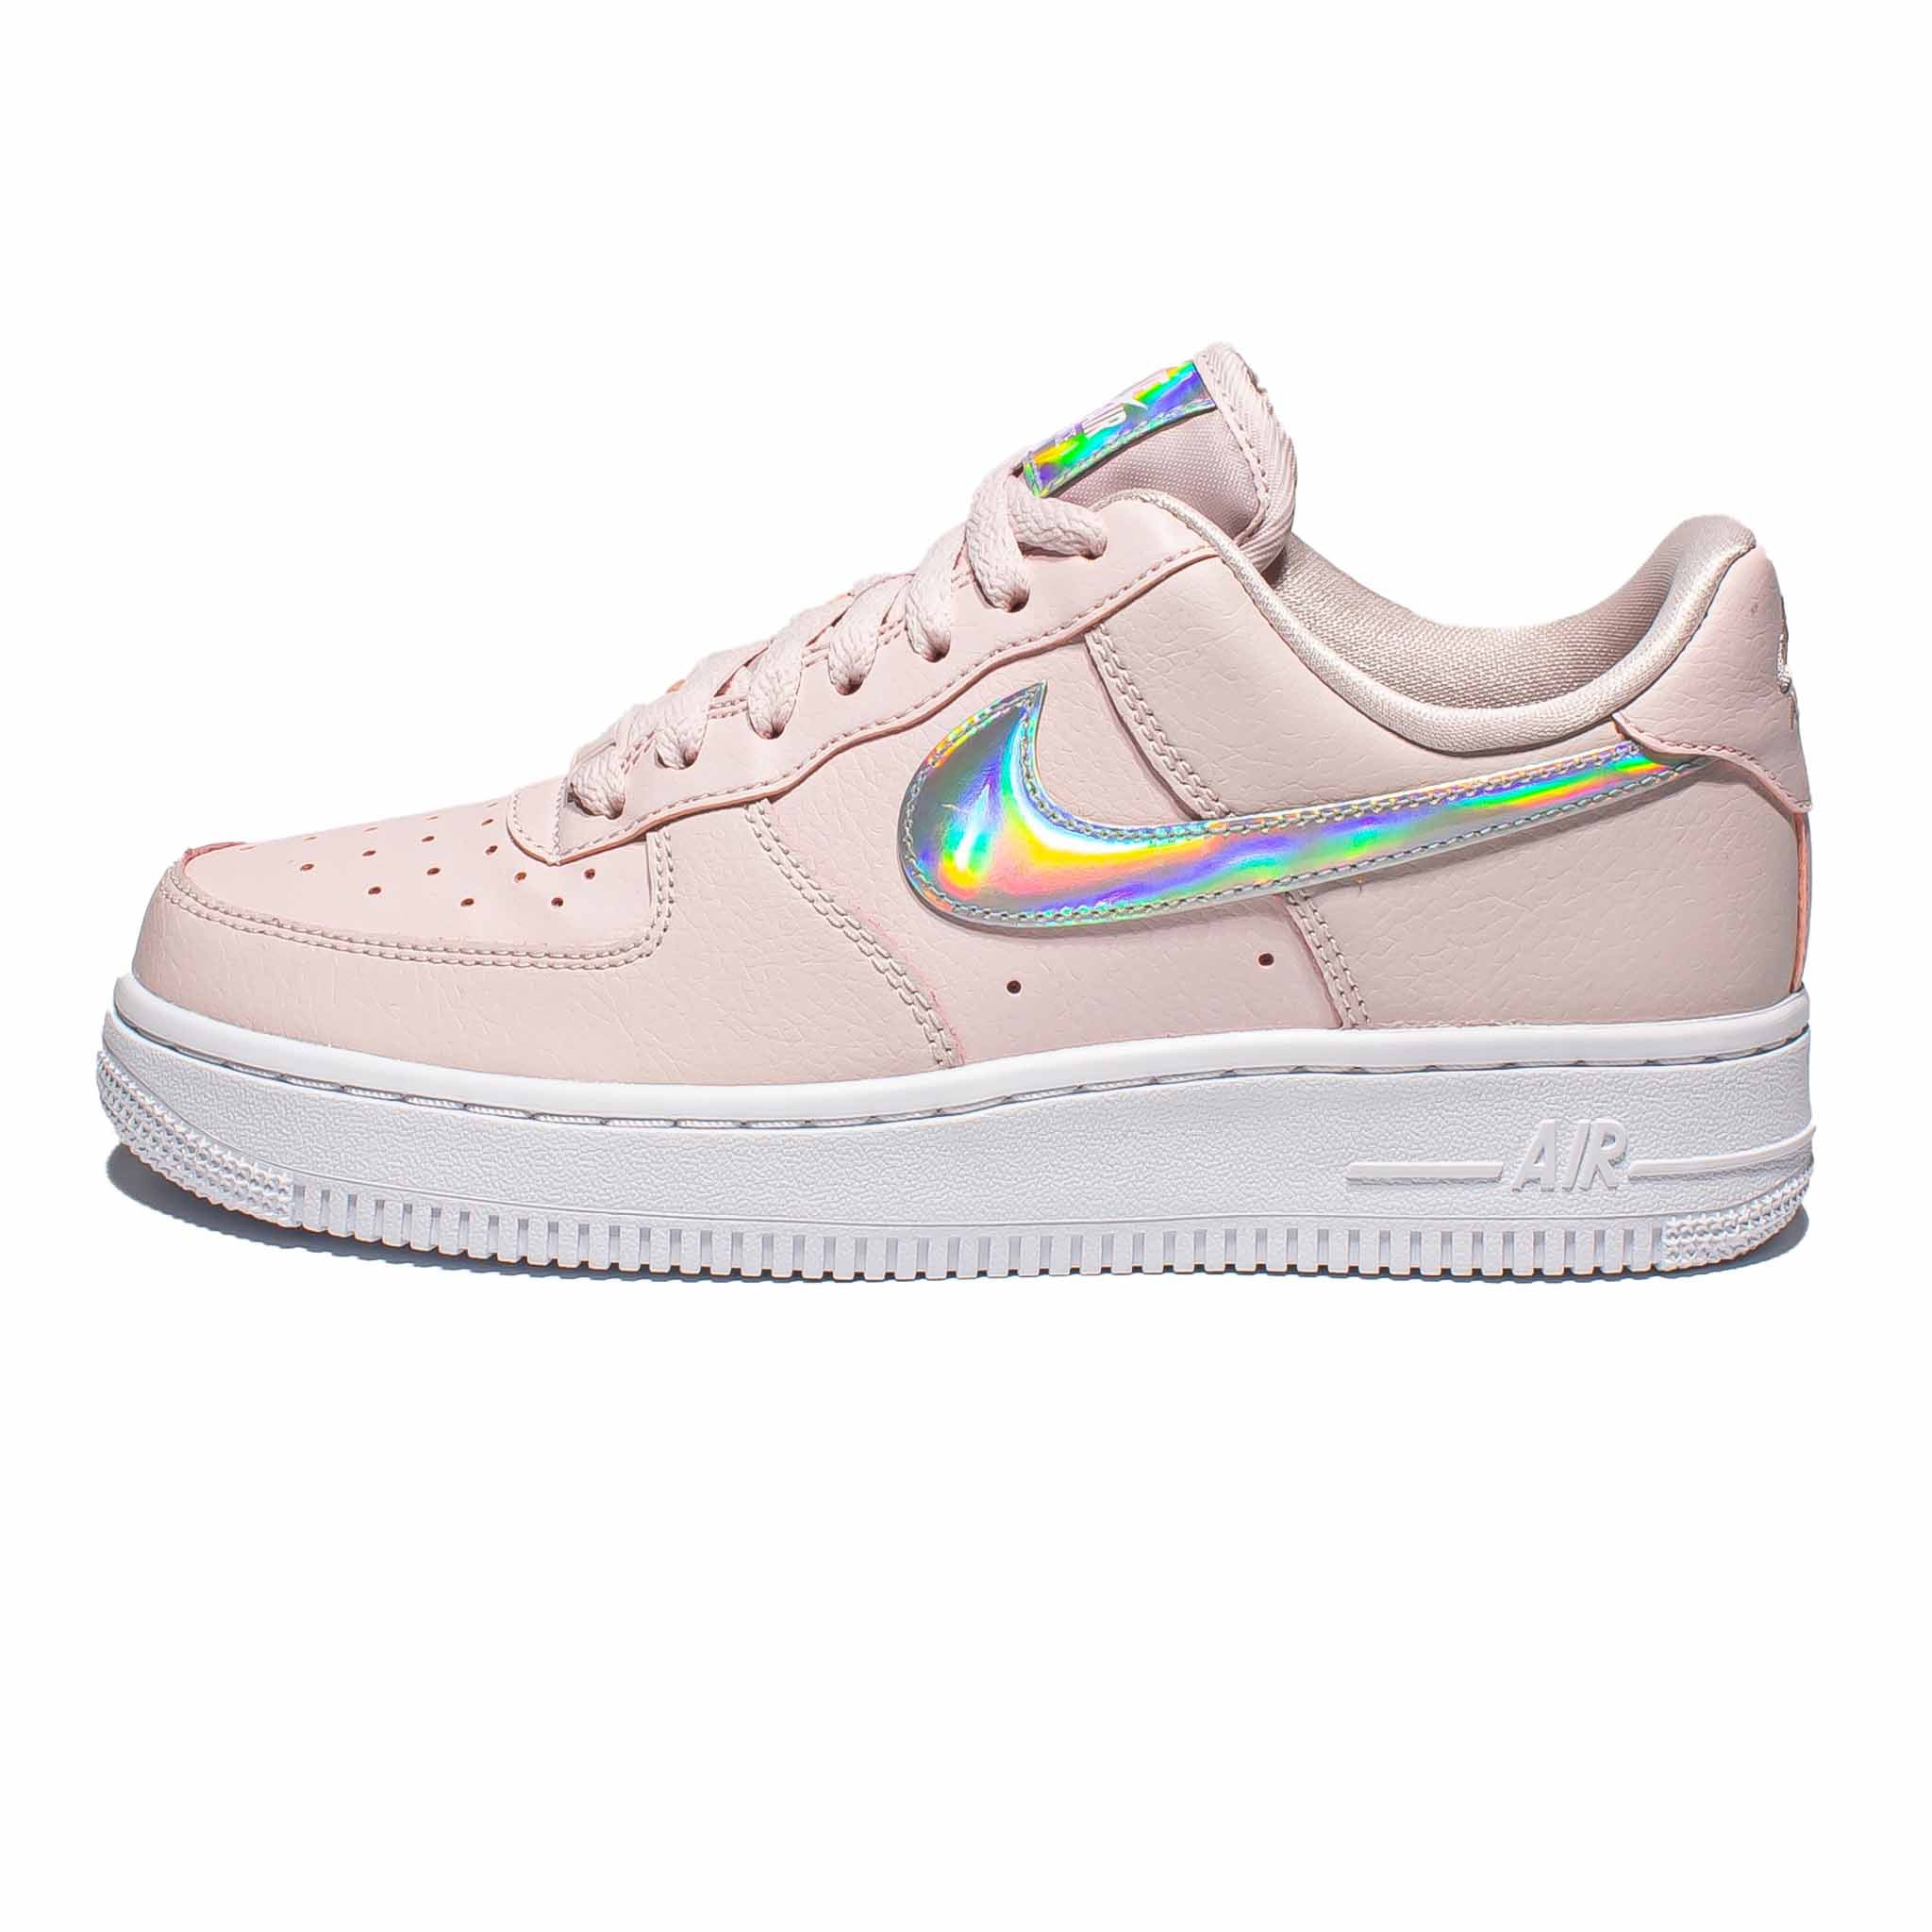 Nike Air Force 1 '07 Low 'Iridescent Swoosh' Pink